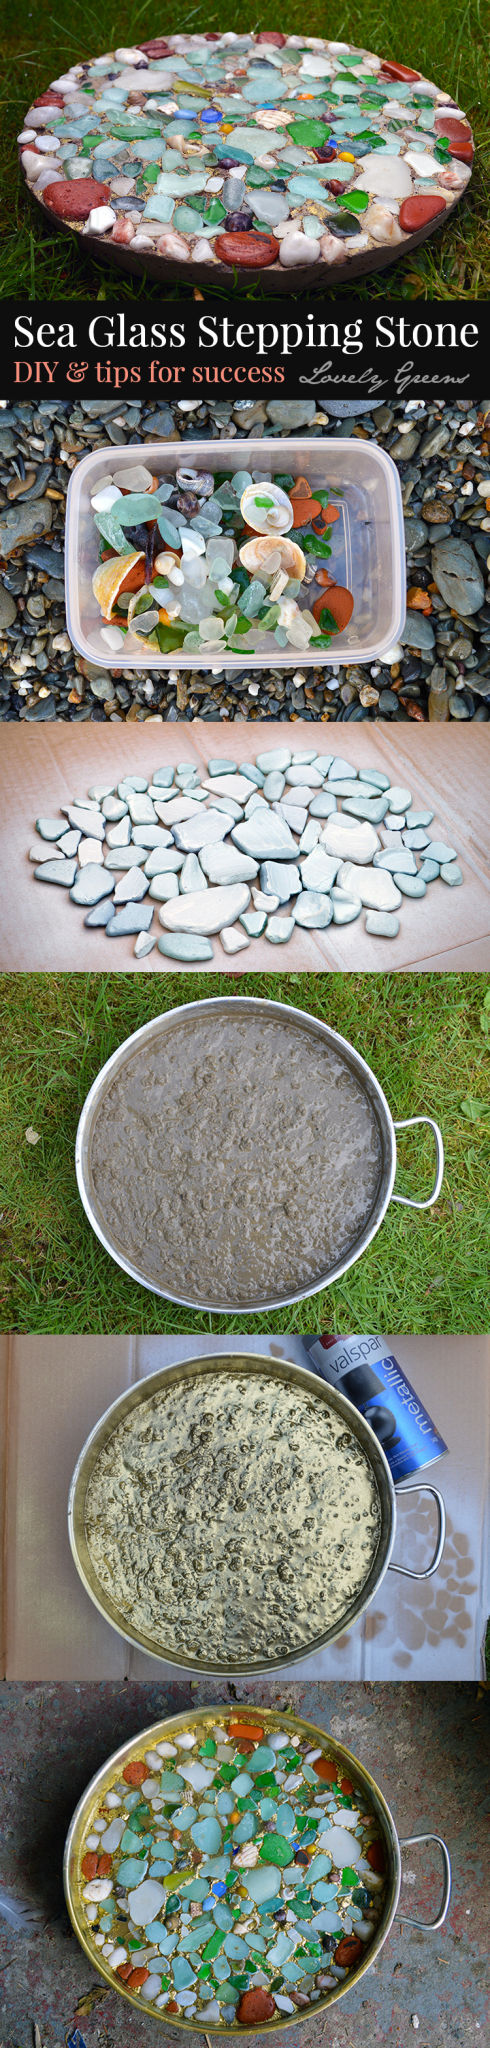 8 Personalized Diy Stepping Stones Diy Thought